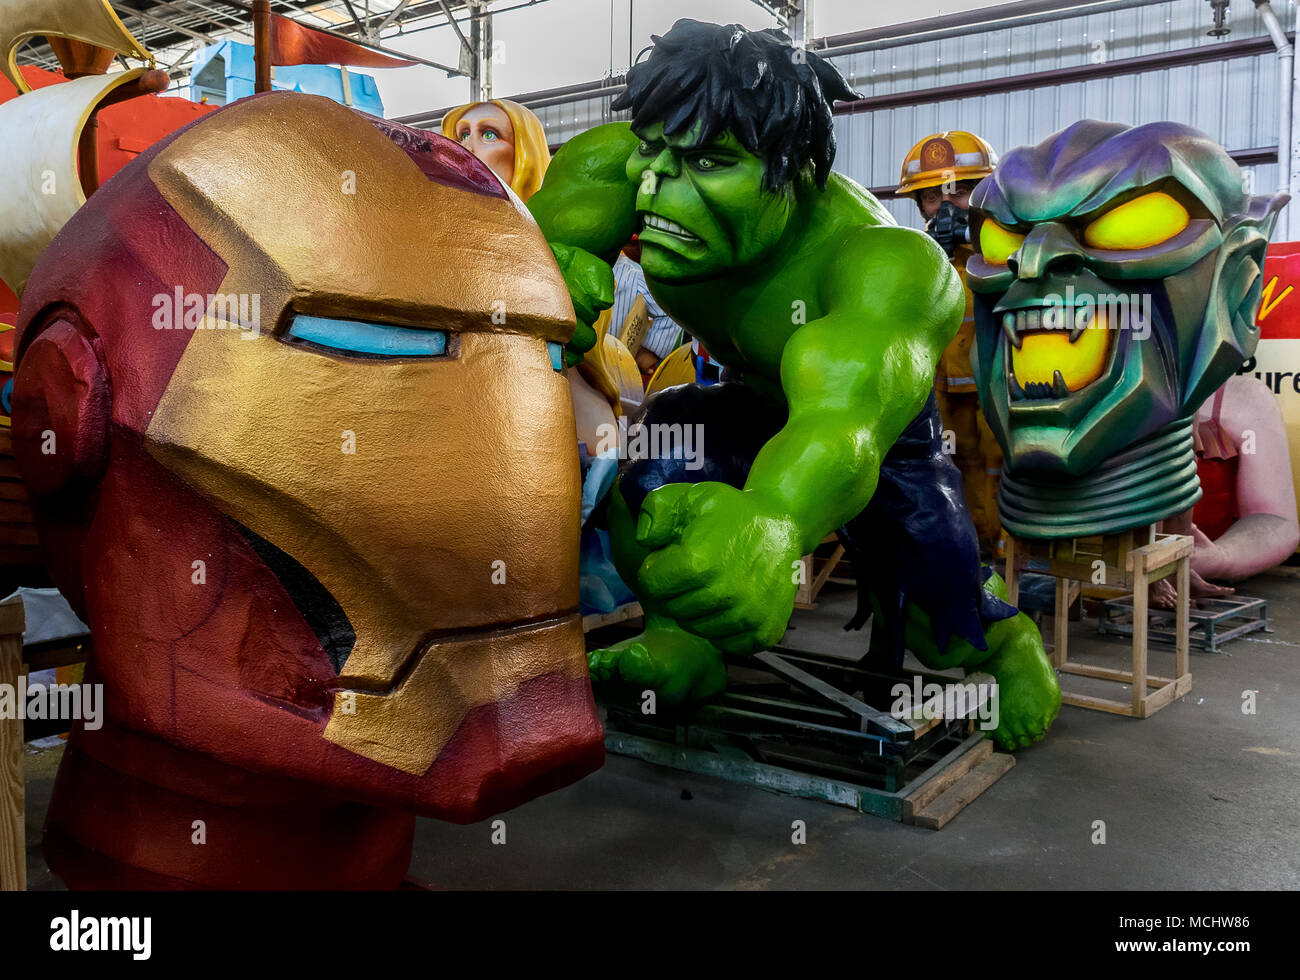 new orleans mardi gras world - superheroes hulk, iron man, green